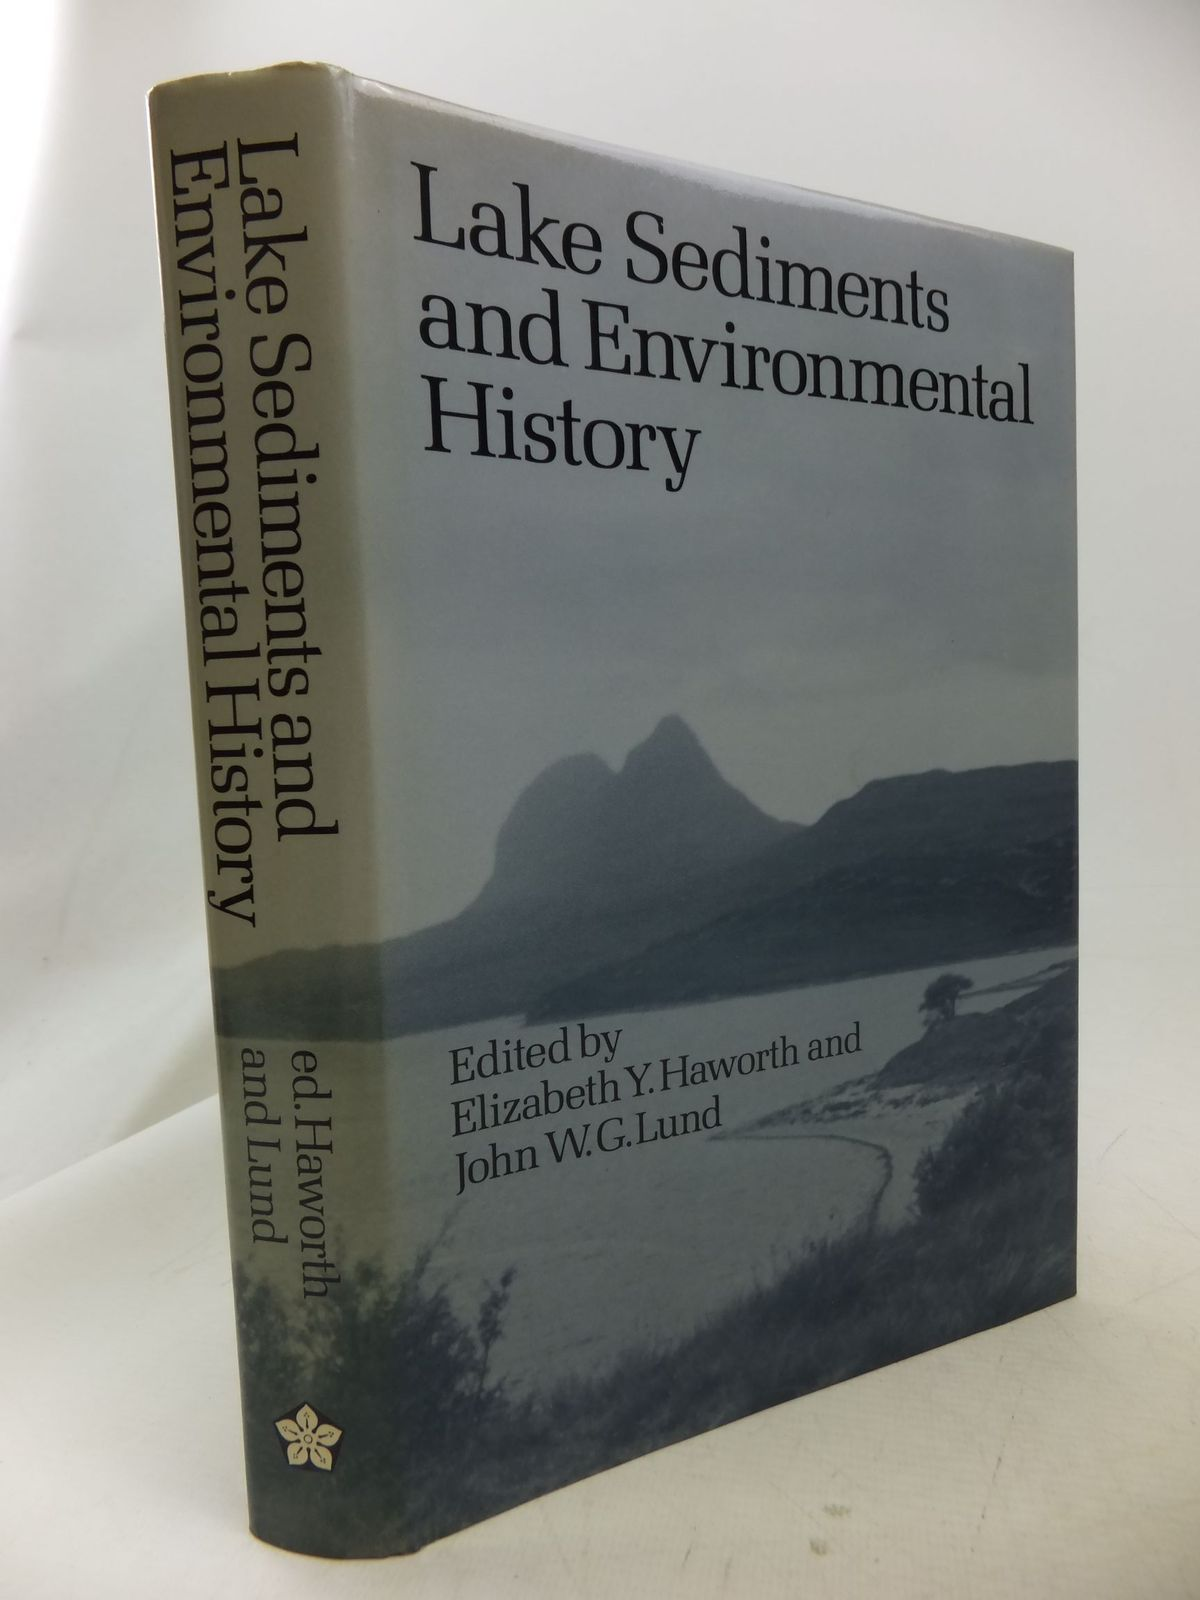 Photo of LAKE SEDIMENTS AND ENVIRONMENTAL HISTORY written by Haworth, Elizabeth Y. Lund, John W.G. published by Leicester University Press (STOCK CODE: 1710866)  for sale by Stella & Rose's Books